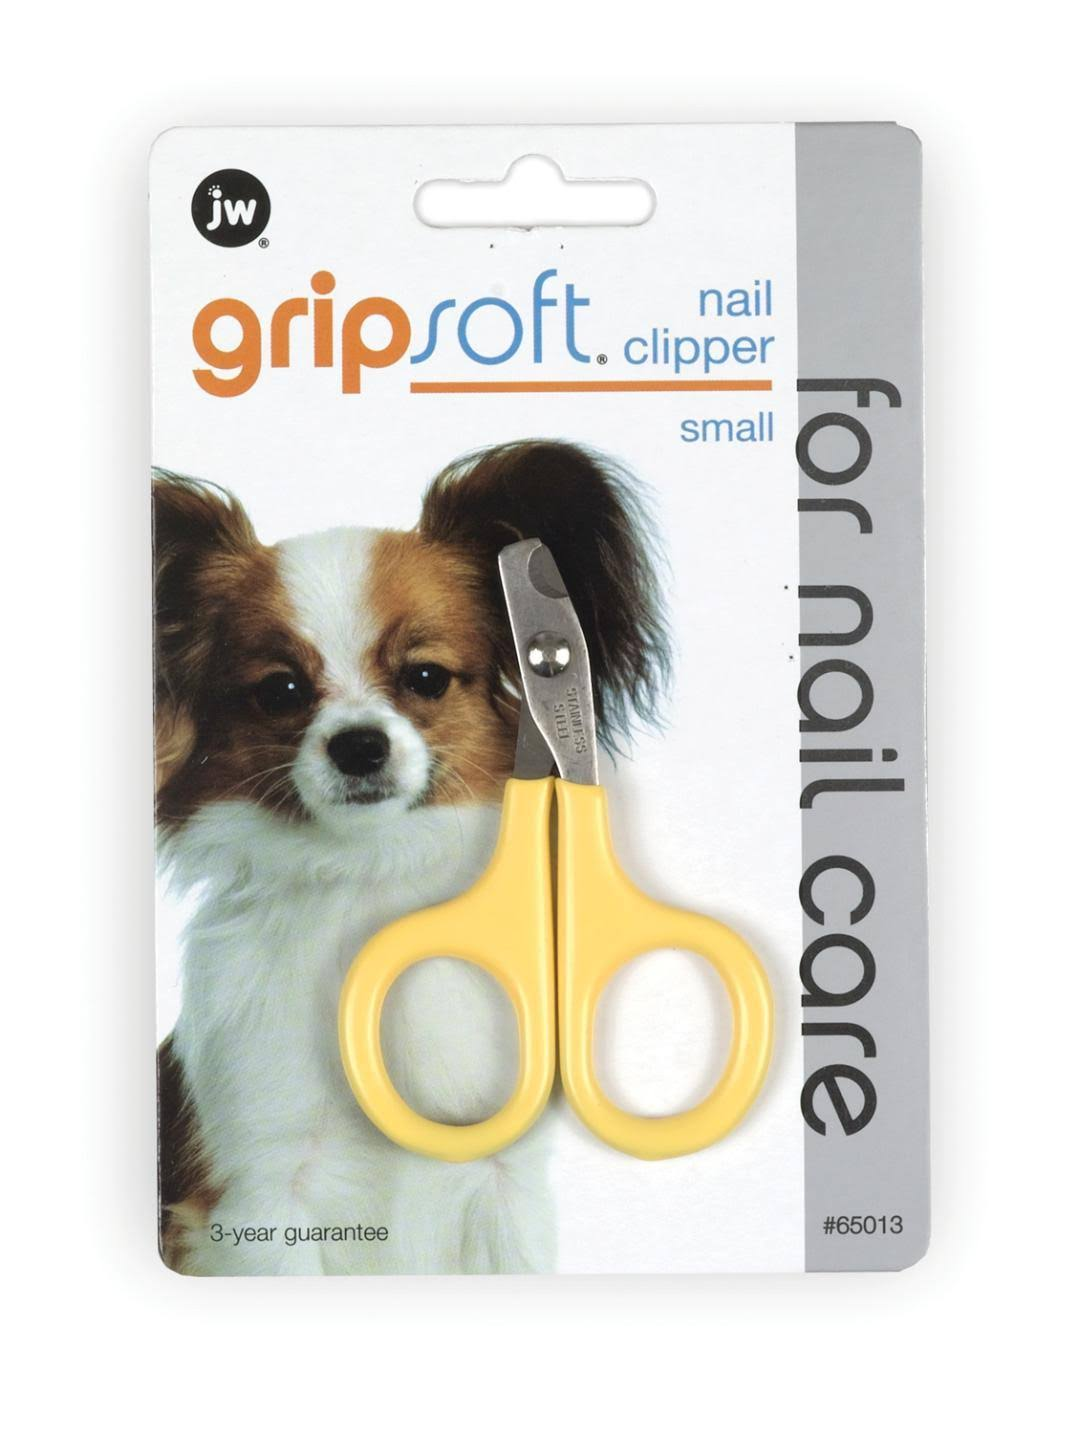 JW Pet Company GripSoft Nail Clipper - Small